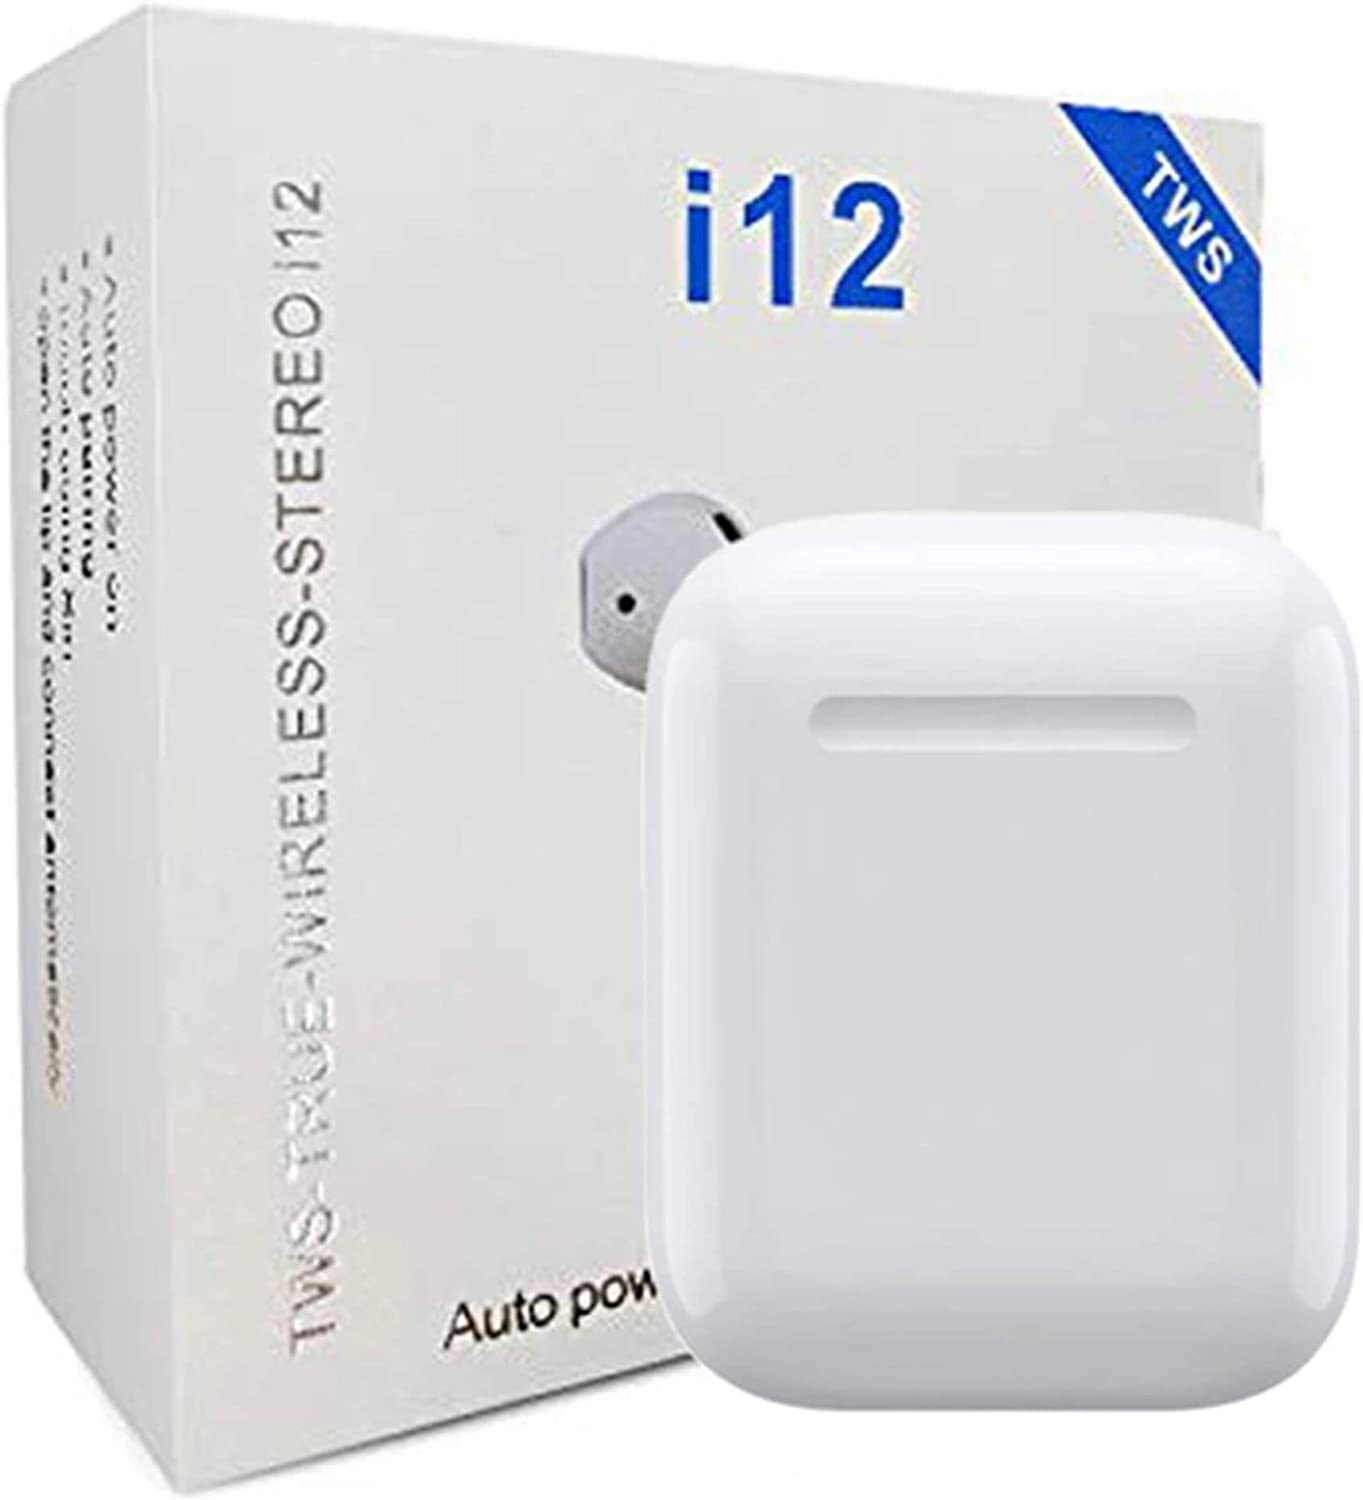 P4M i12 TWS Bluetooth 5.0 Wireless Earbuds | Wireless Bluetooth Headphones with Deep Bass HiFi Stereo Sound | Built-in Mic Earphones with Portable Charging Case for iOS and Android